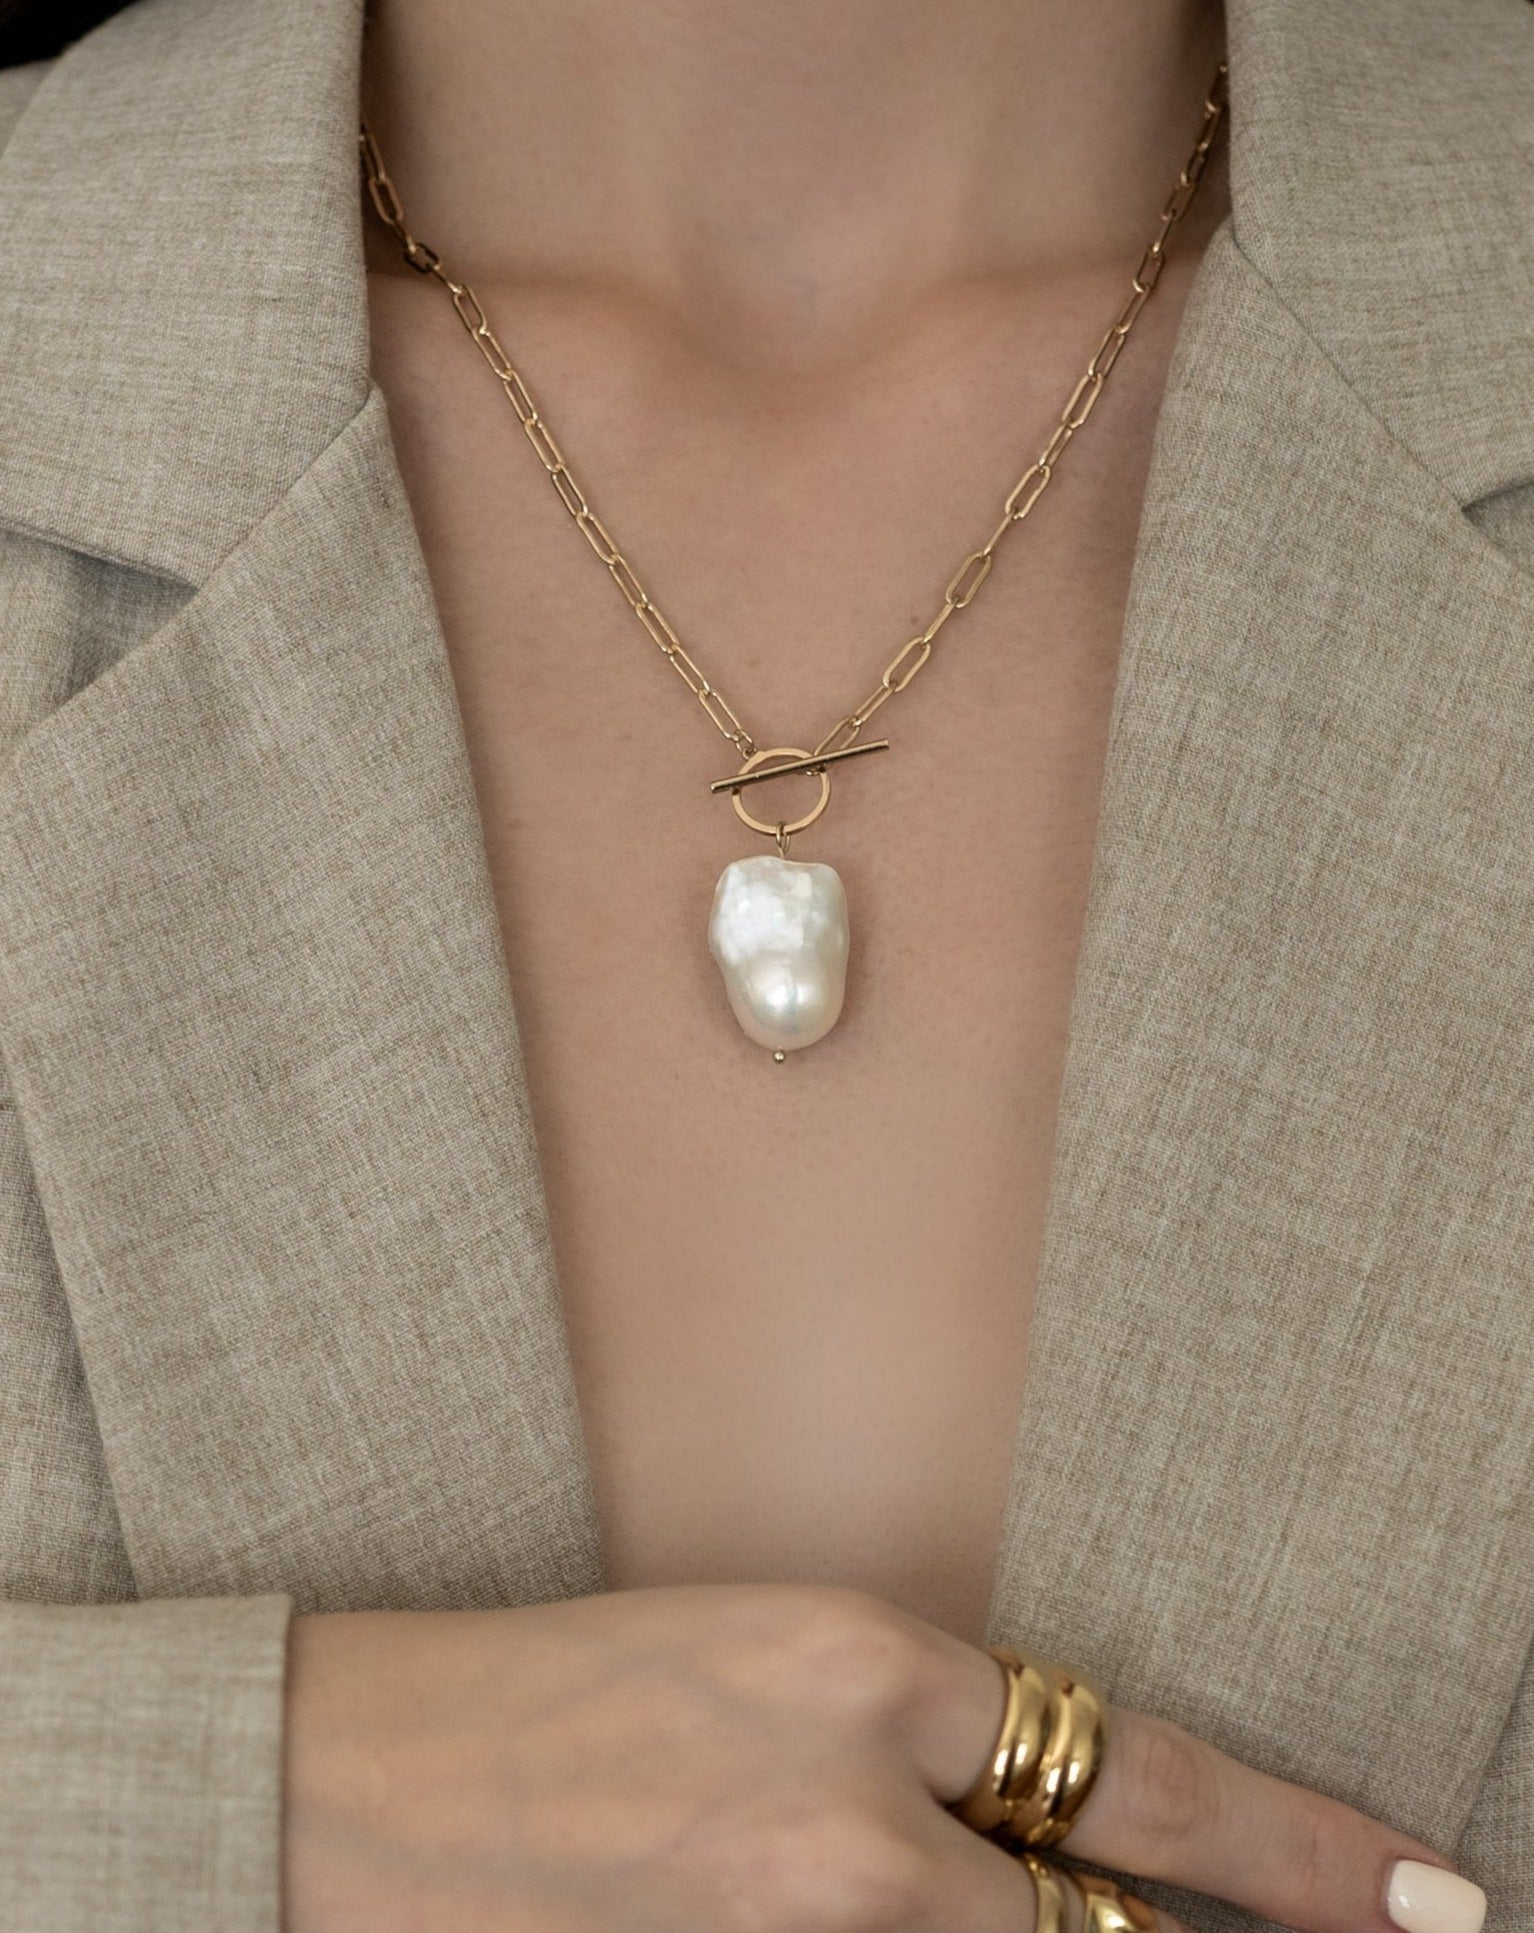 In A Perfect World Baroque freshwater pearl necklace with toggle clasp